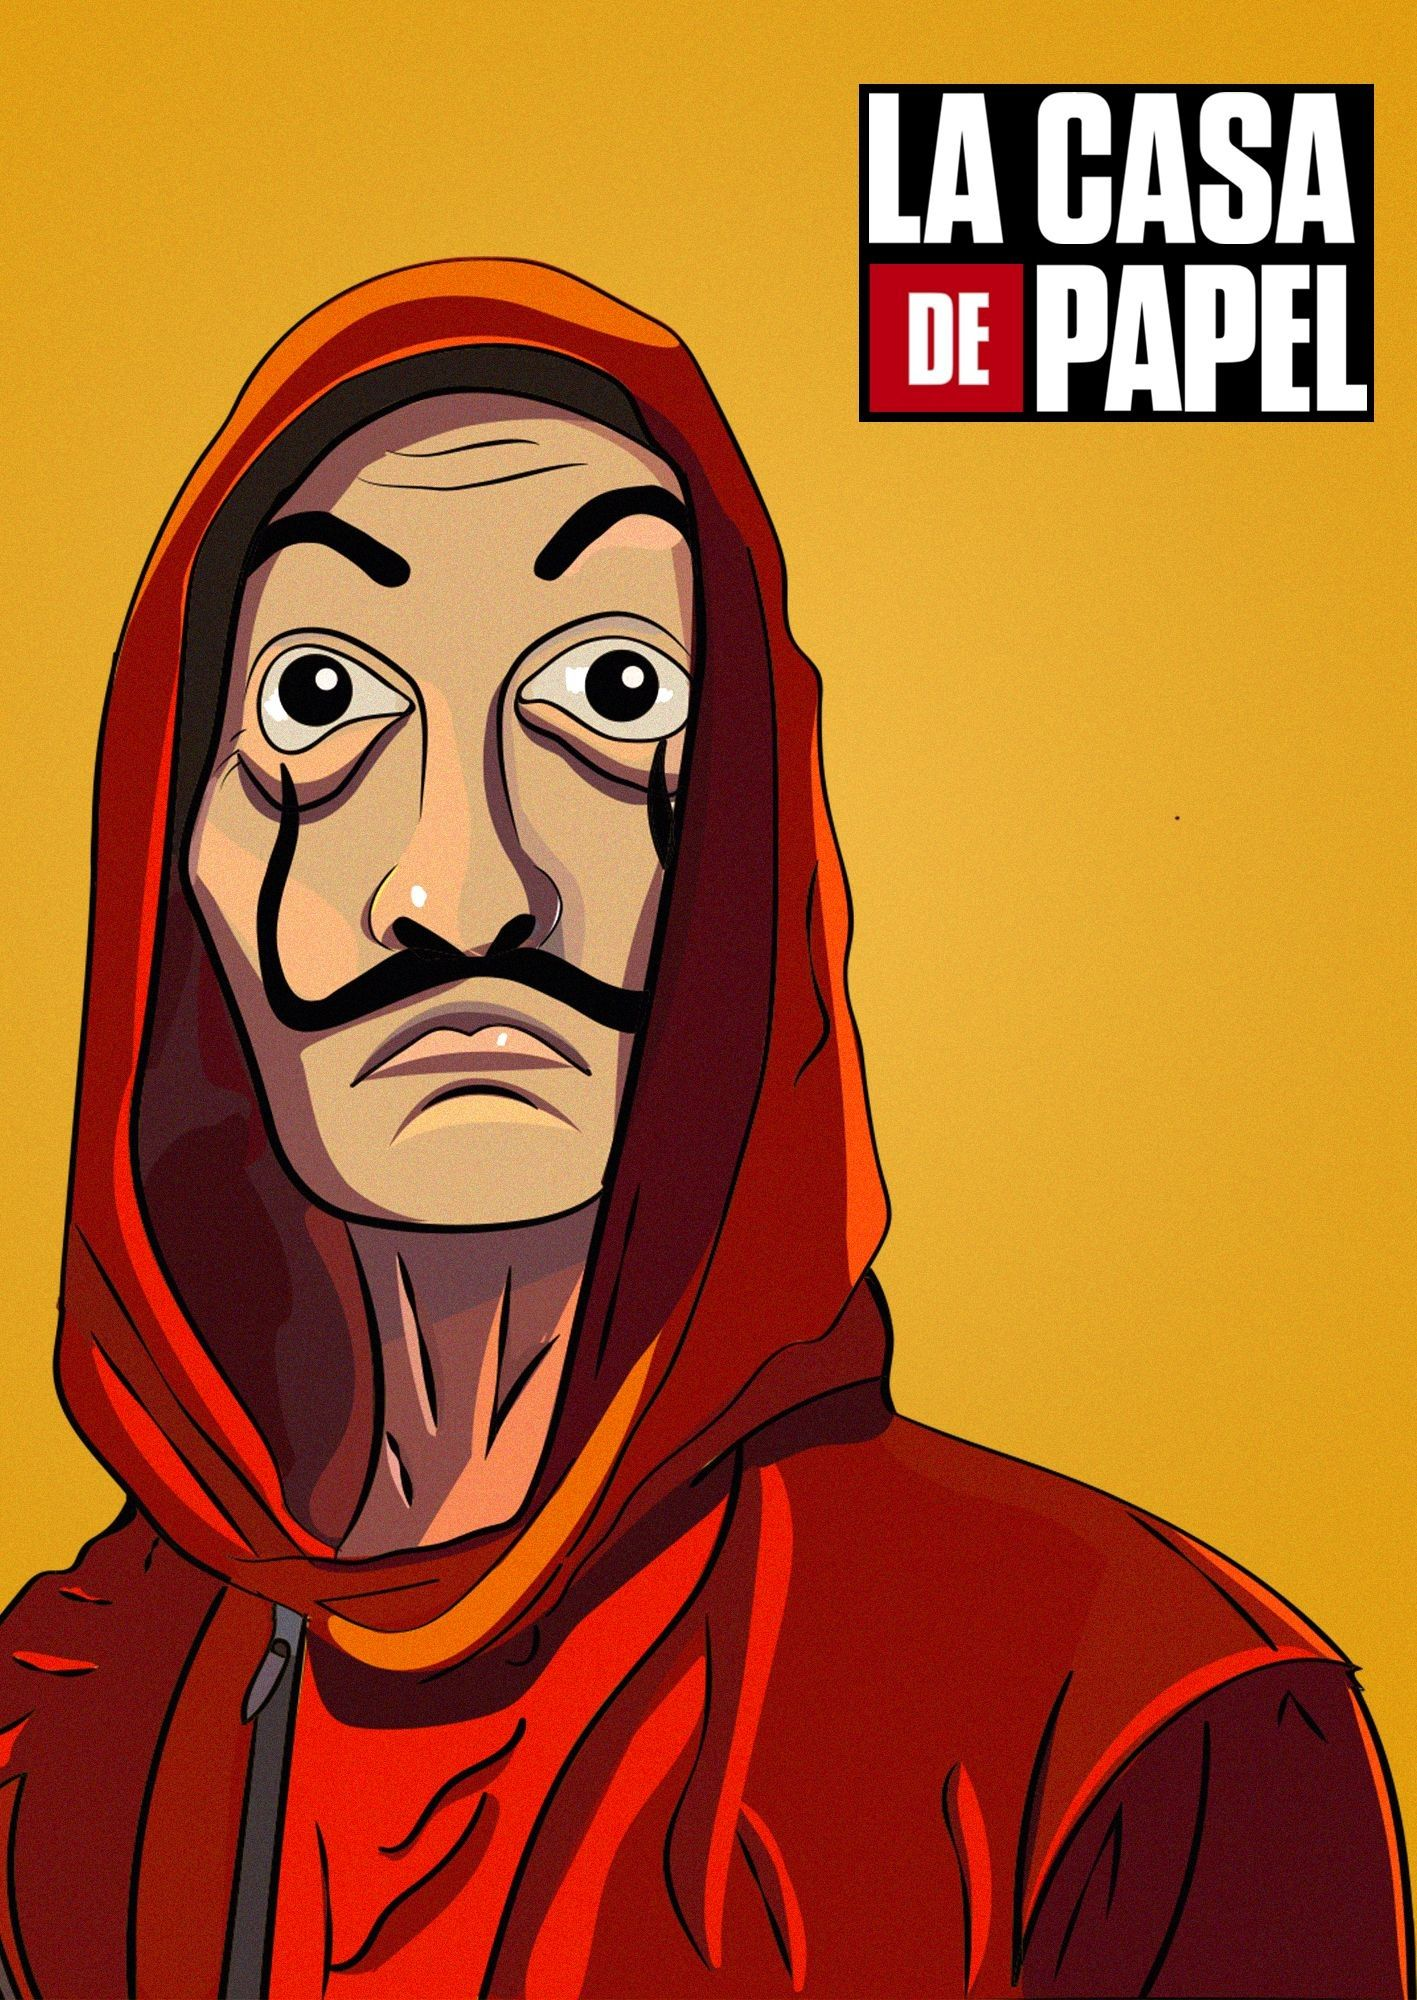 Pin On La Casa De Papel